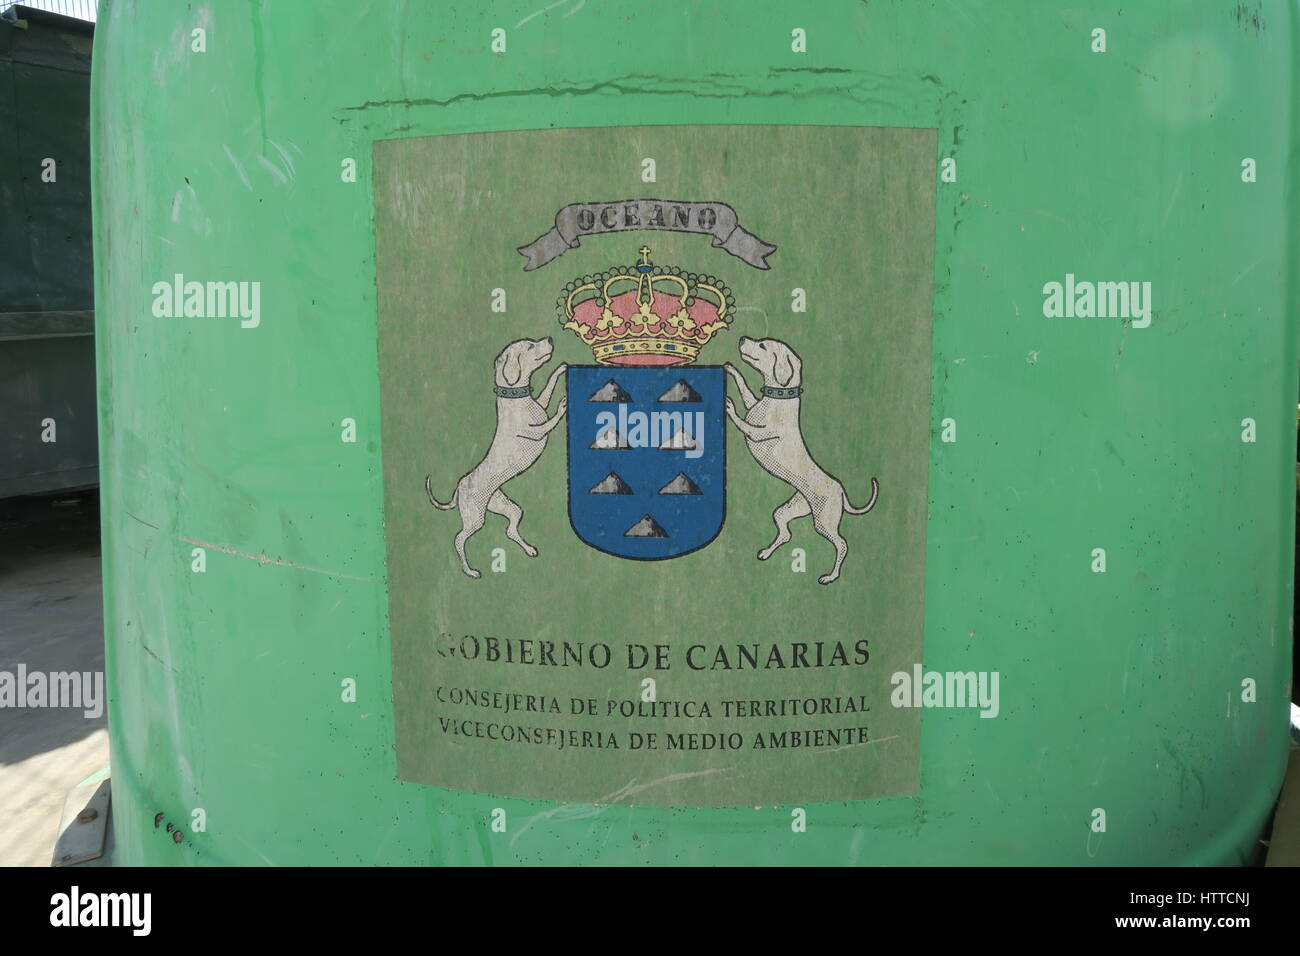 Crest on a bottle bank in the Canary Islands - Stock Image